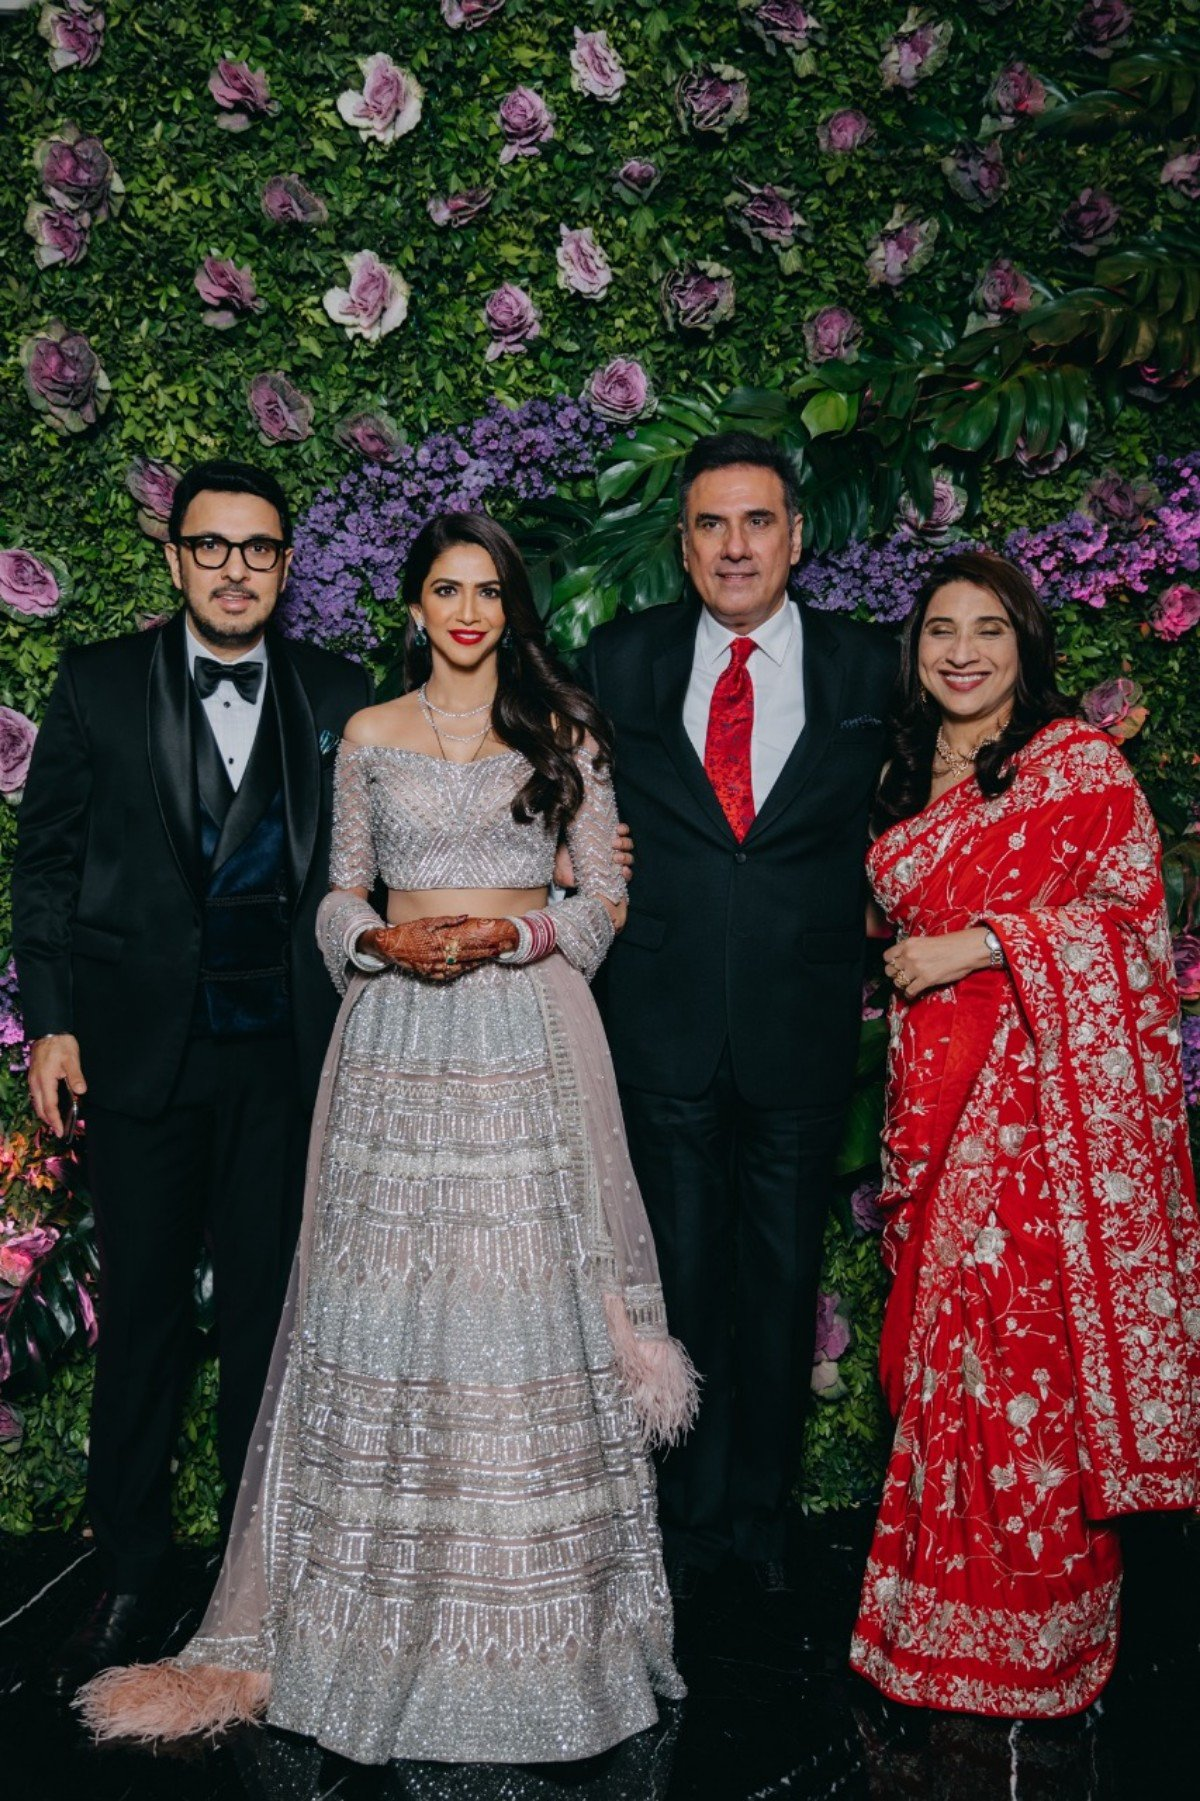 In Pics: B-town celebs attend producer Dinesh Vijan- Pramita Tanwar's wedding party